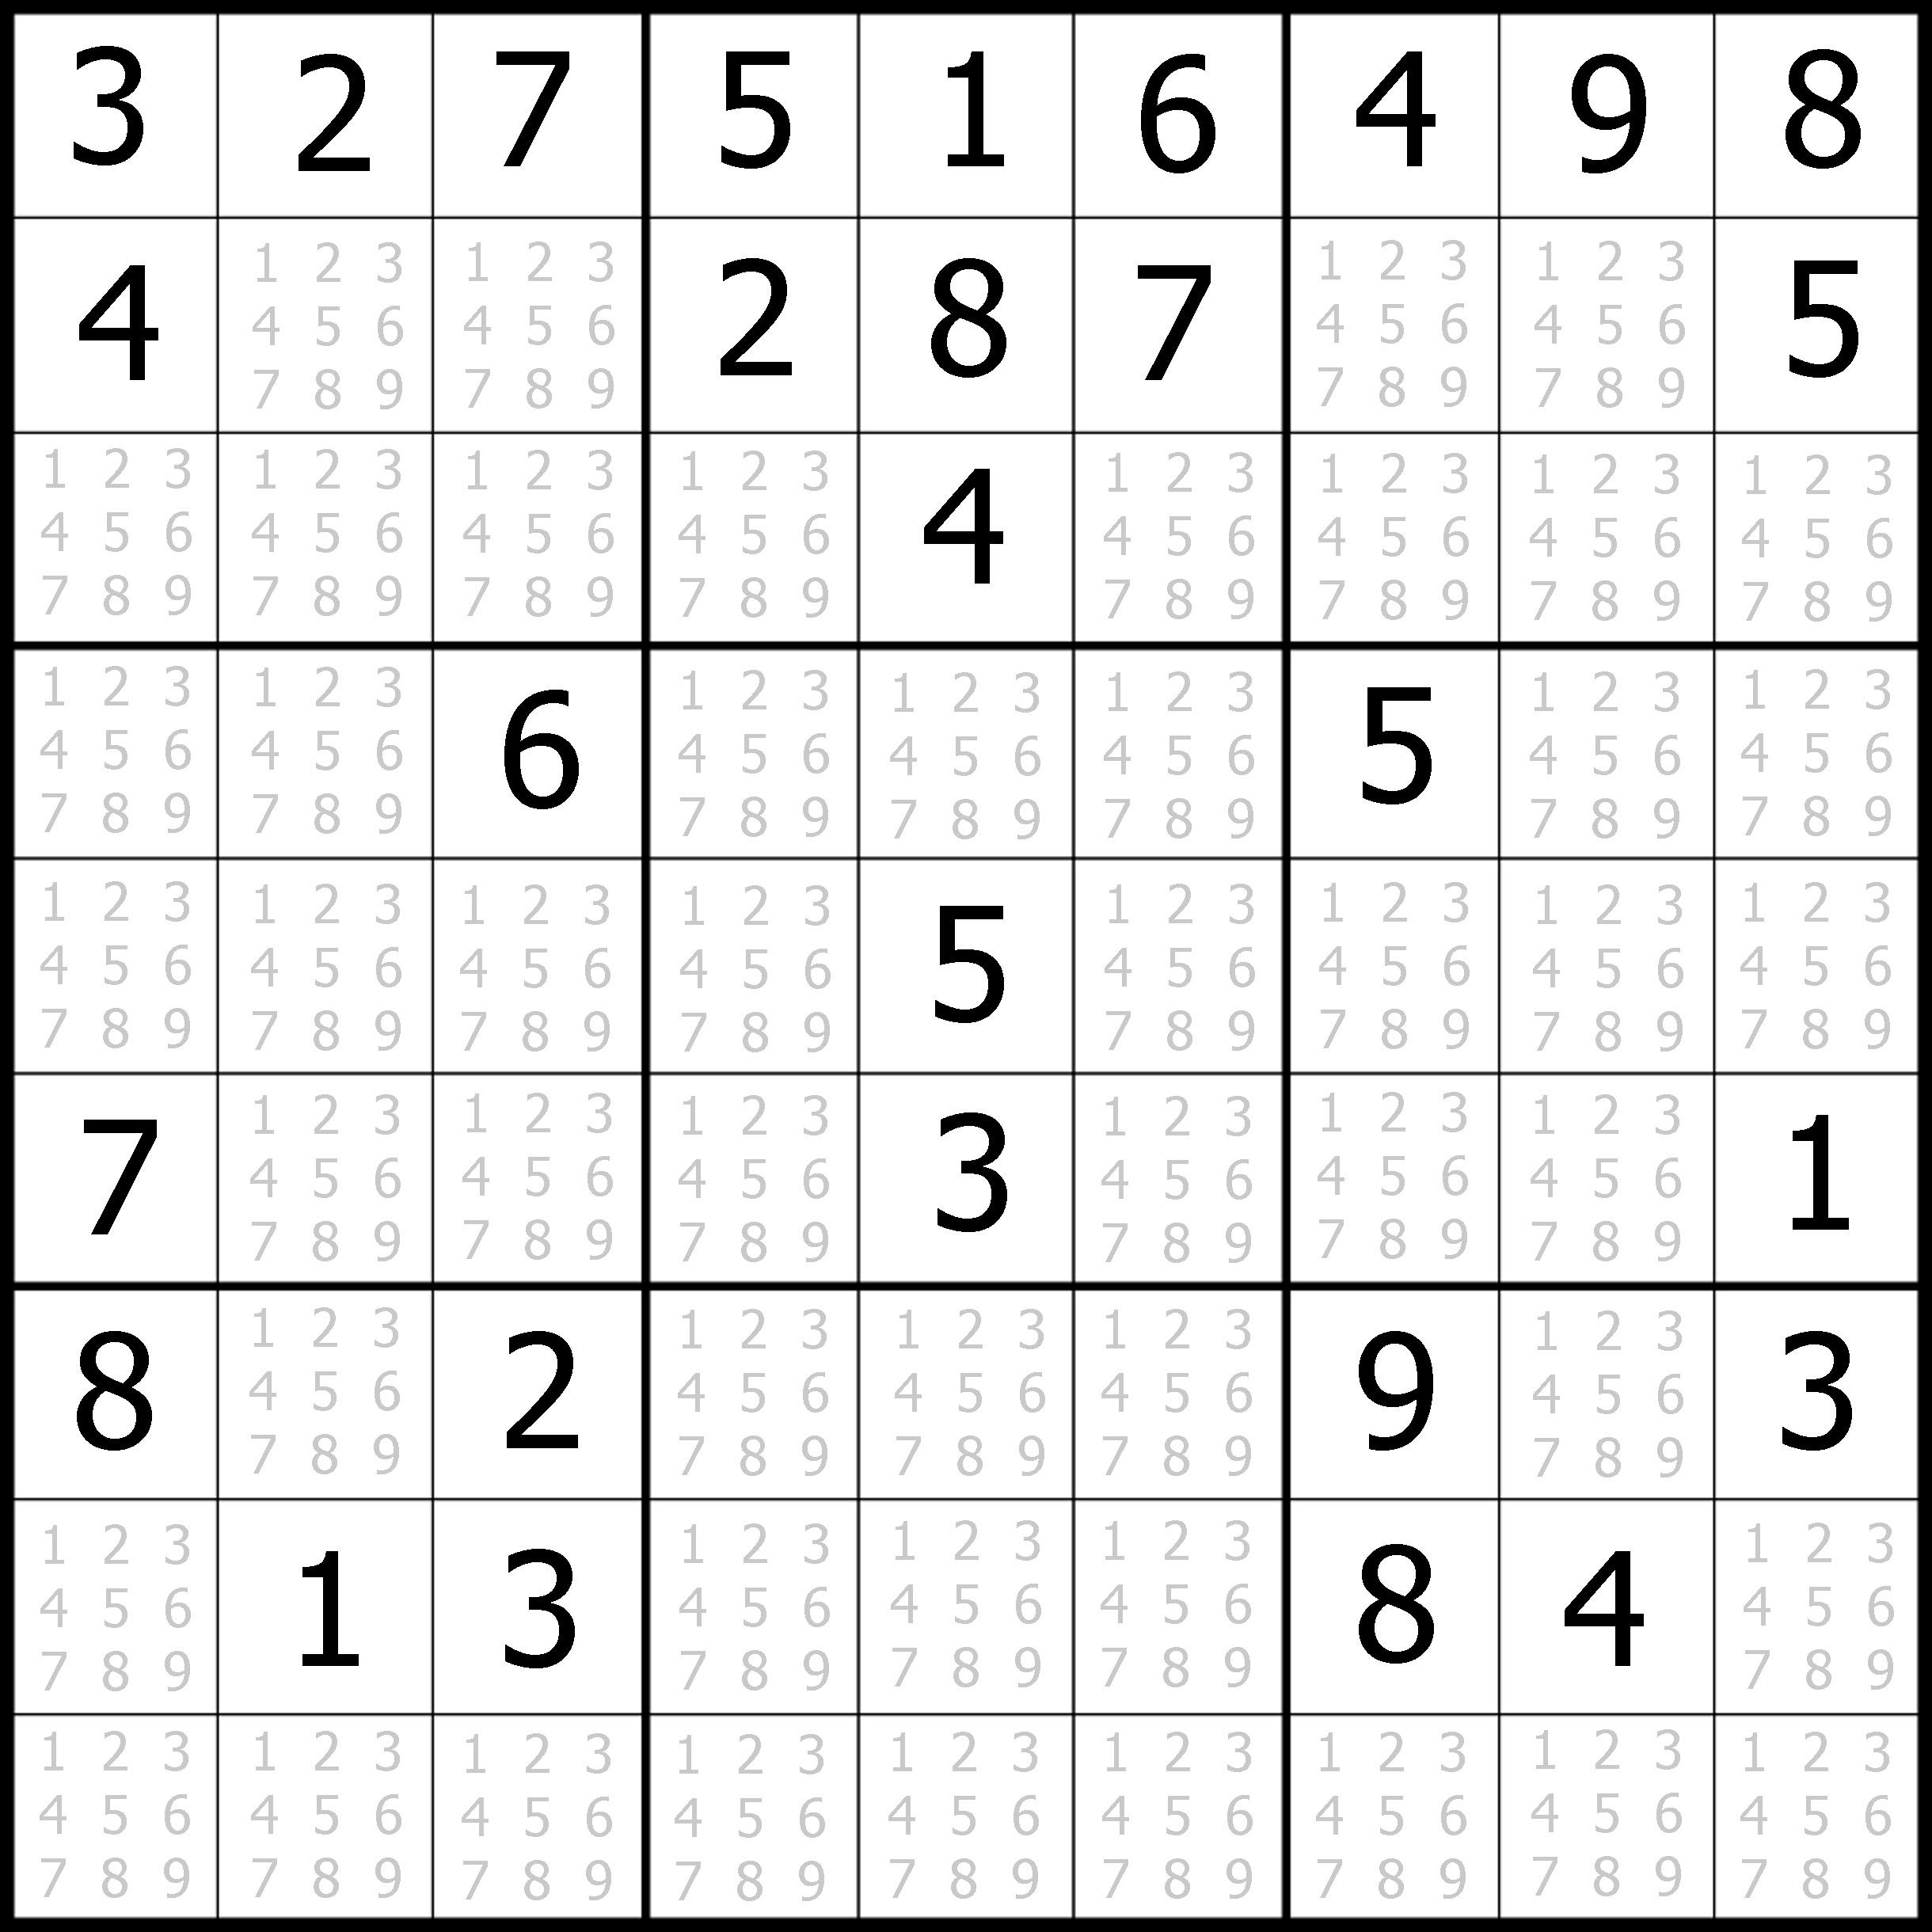 Sudoku Printable | Free, Medium, Printable Sudoku Puzzle #1 | My - Free Printable Sudoku With Answers